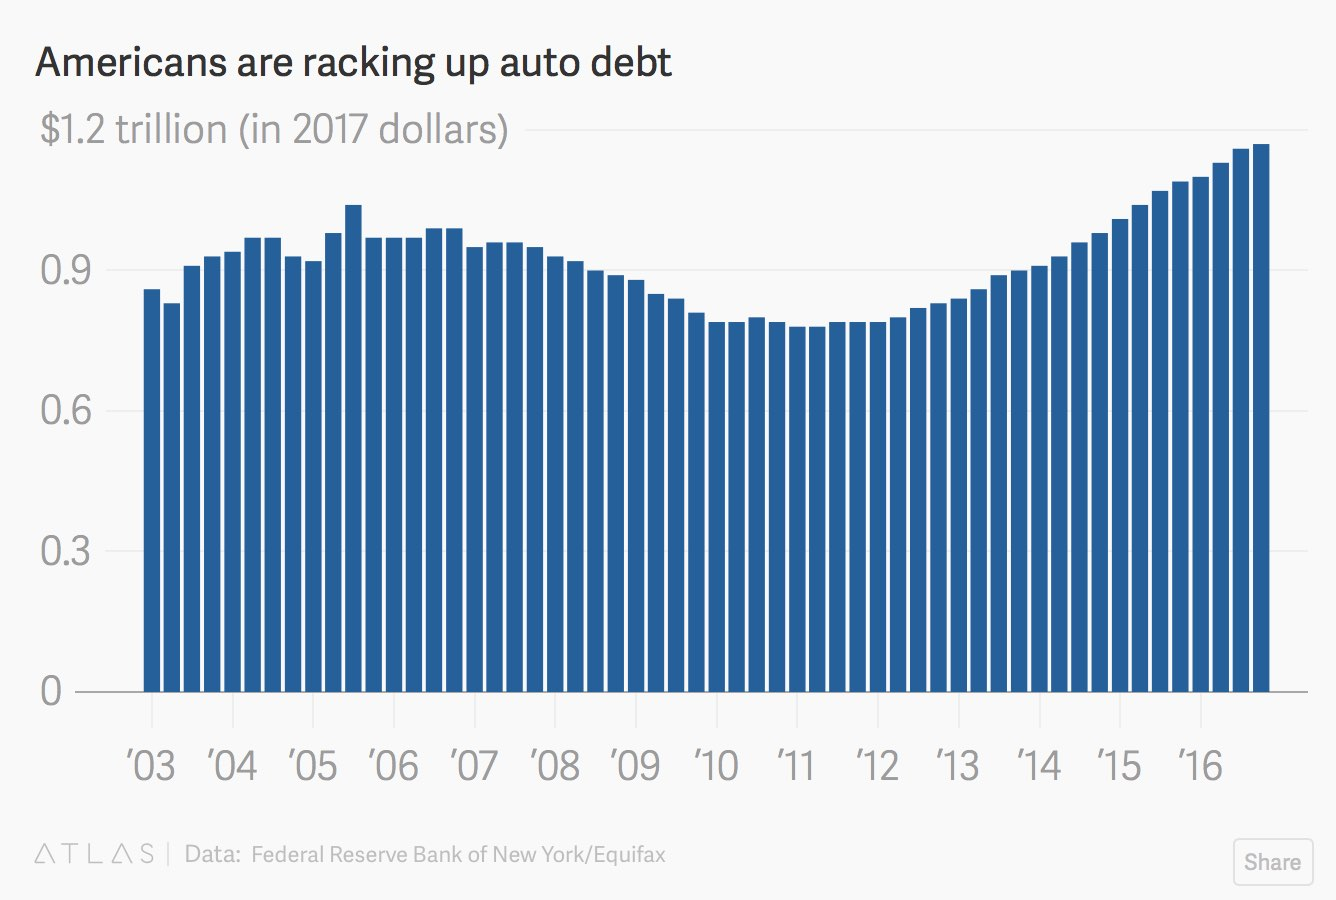 auto-debt-increasing-2017